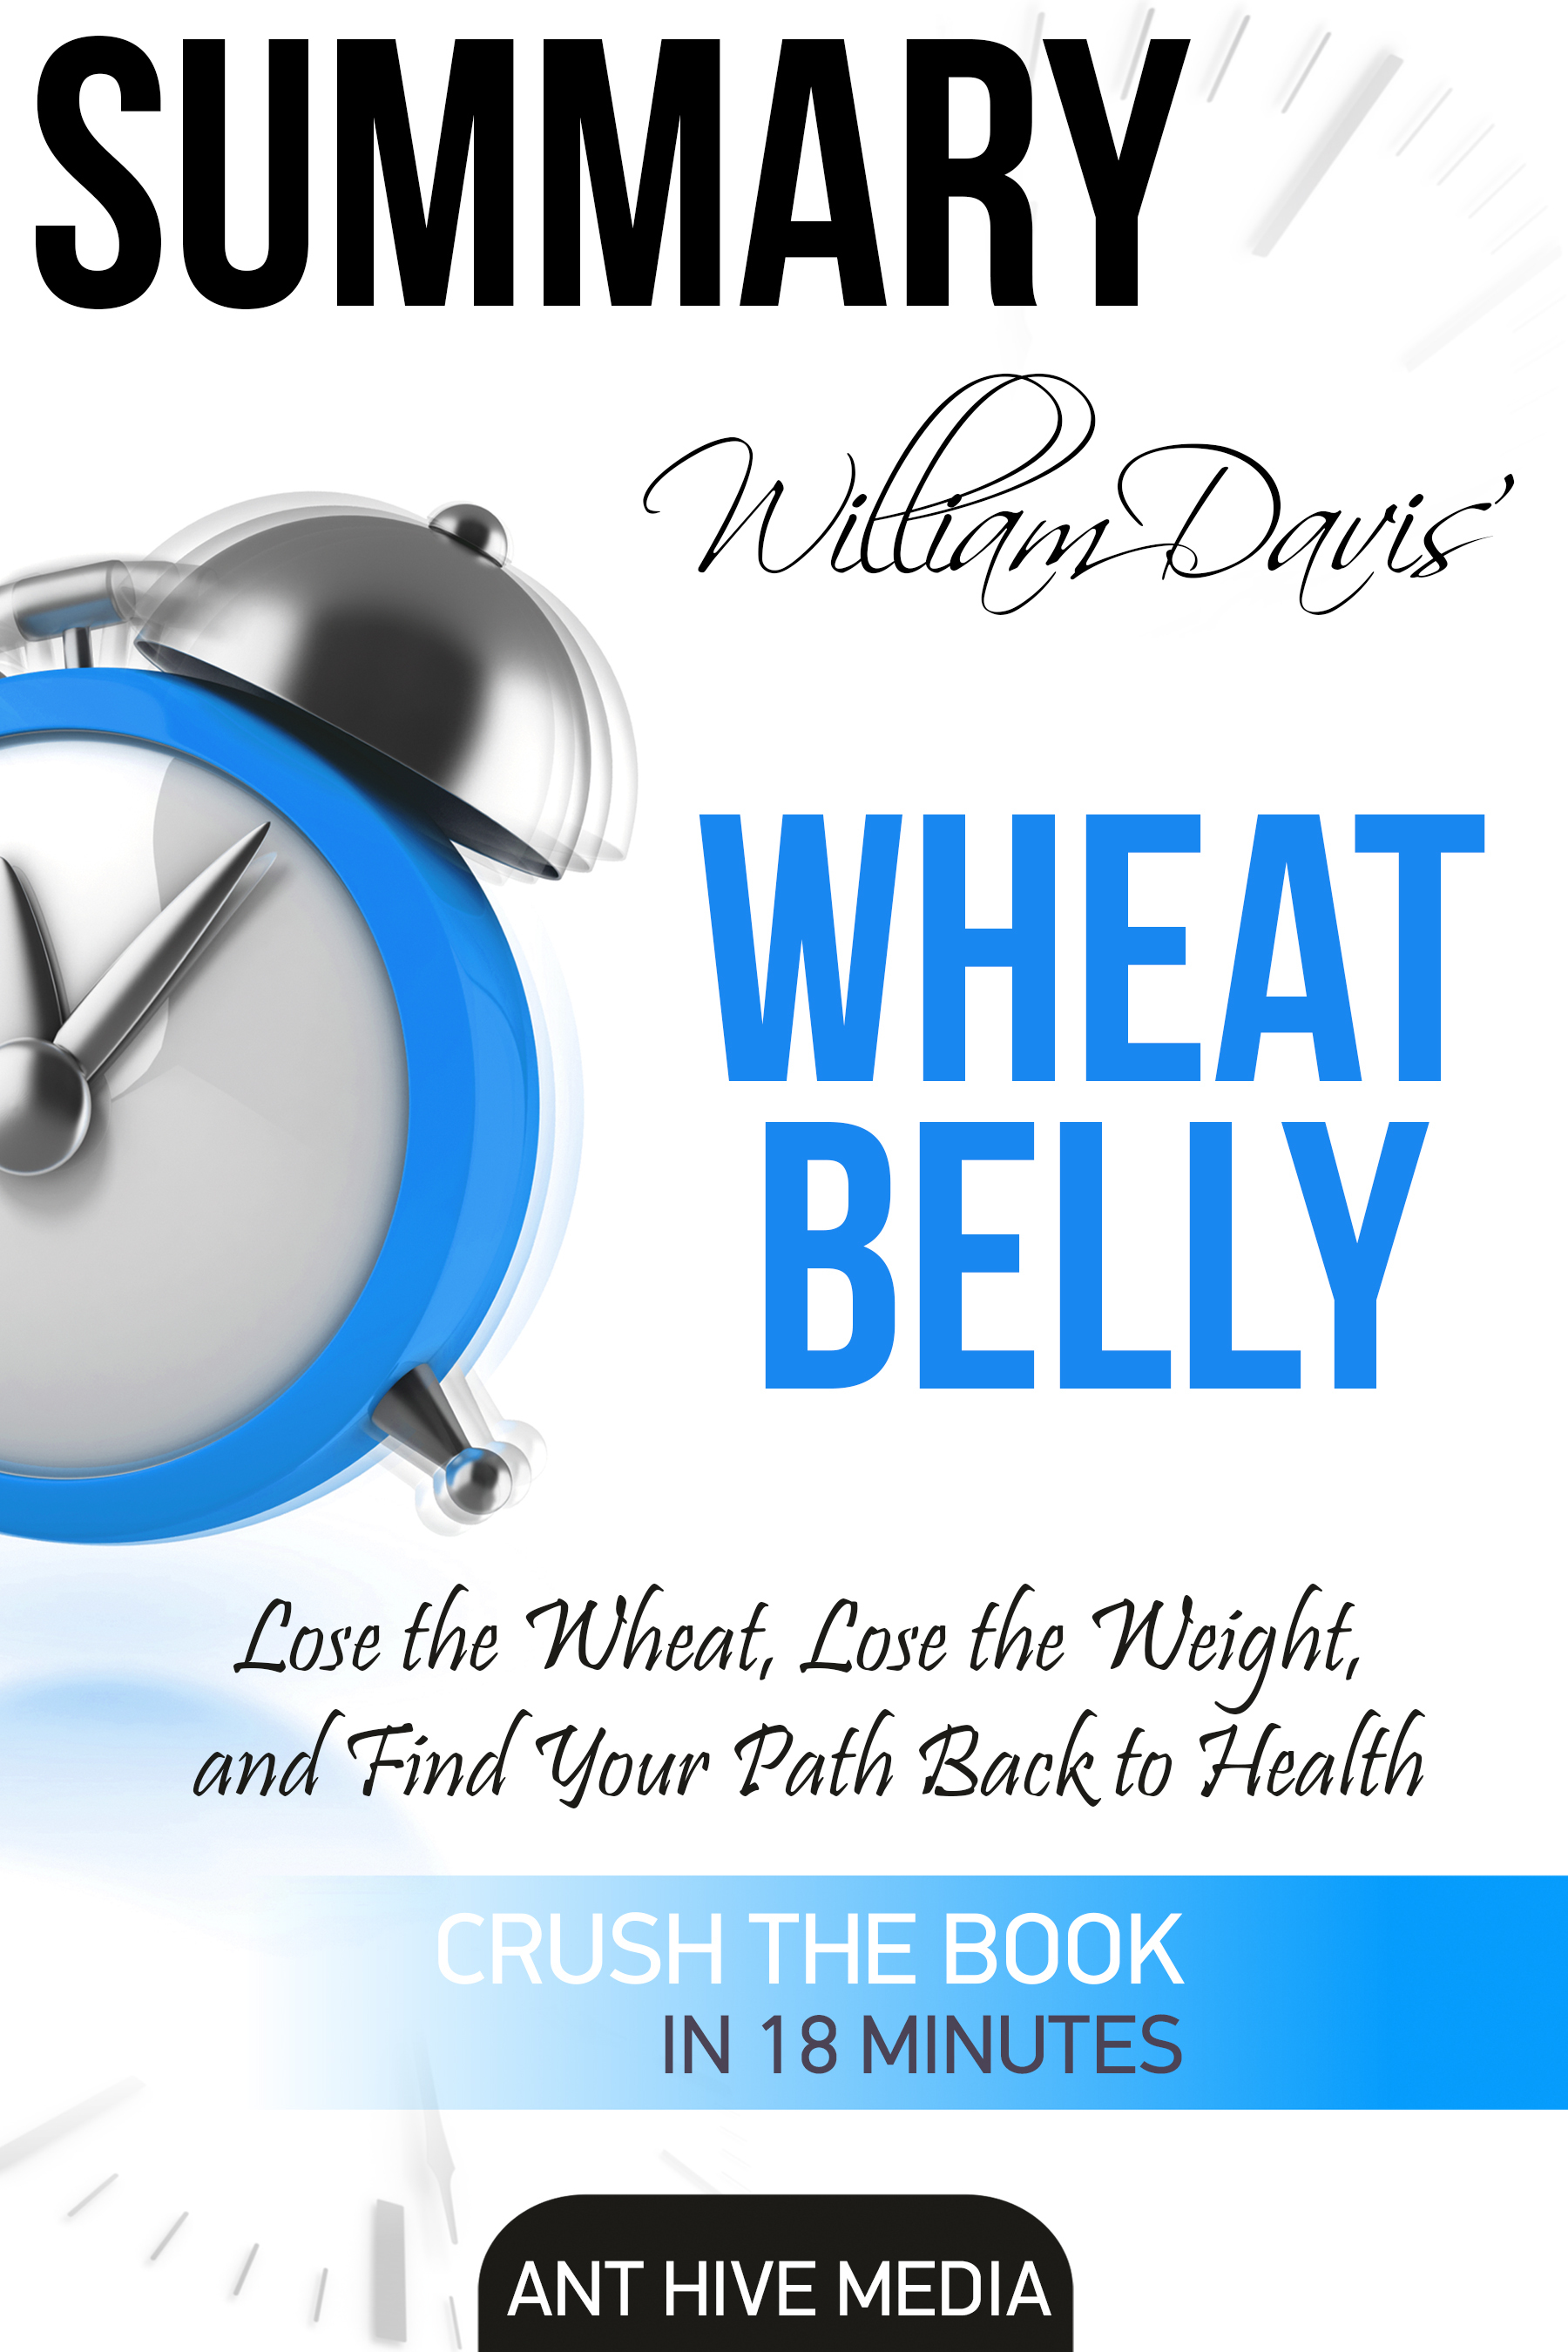 William Davis' Wheat Belly: Lose the Wheat, Lose the Weight, and Find Your Path Back to Health | Summary